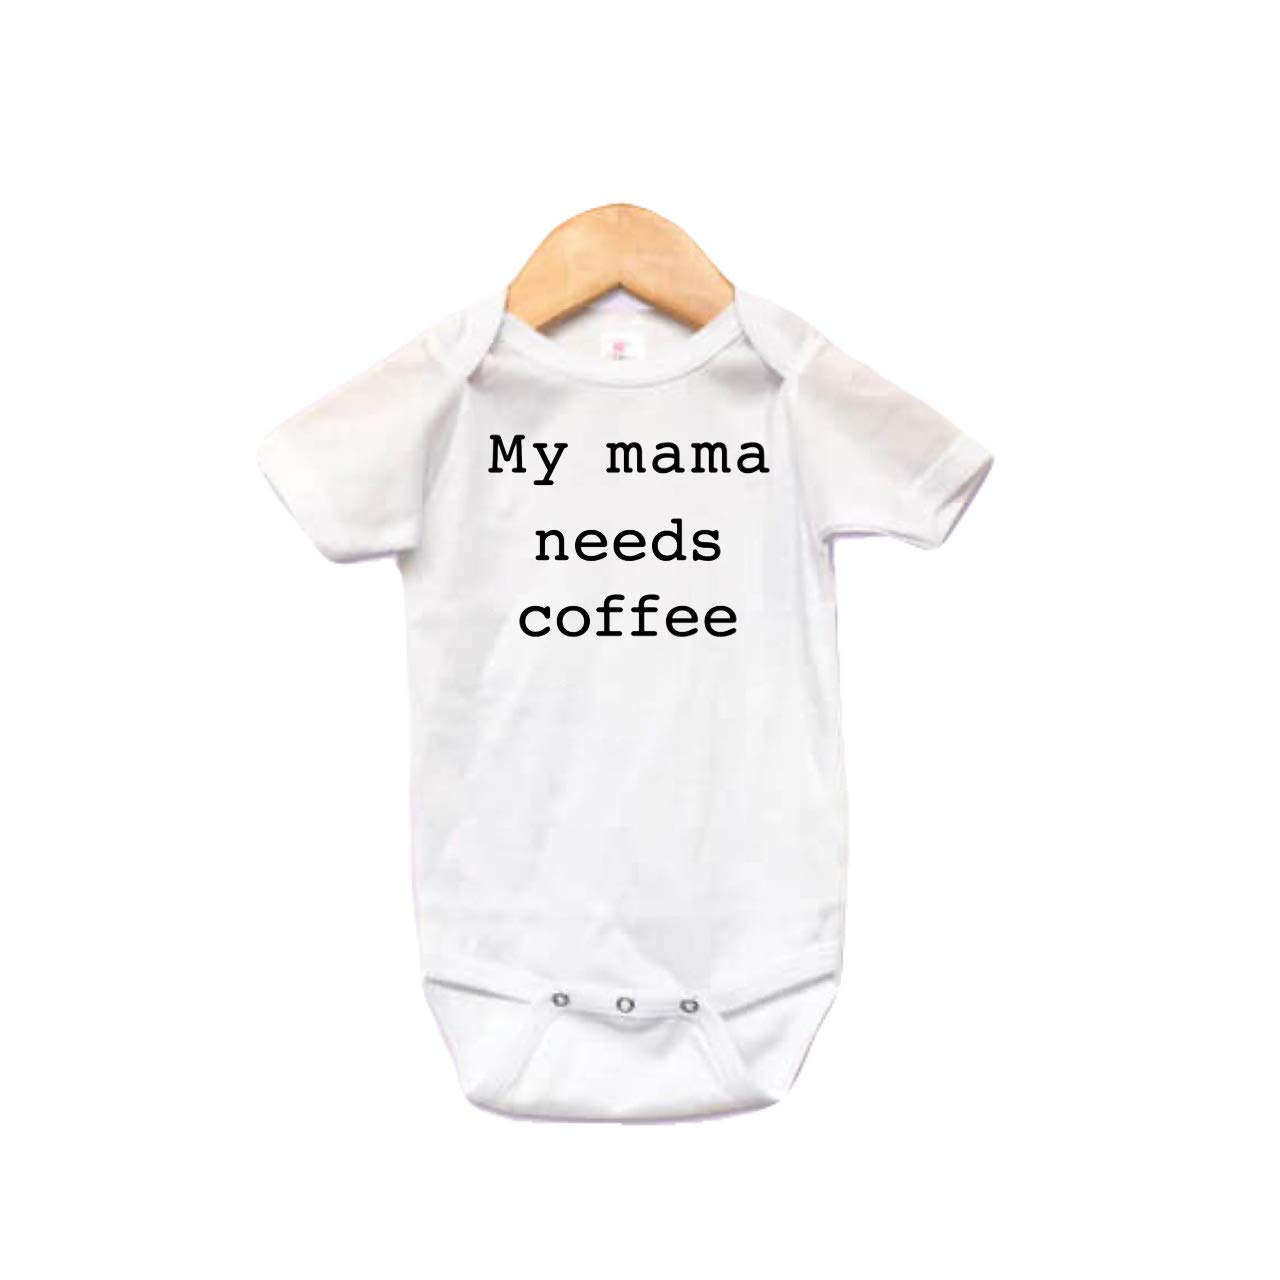 Al sold out. My mama needs baby coffee Max 81% OFF bodysuit